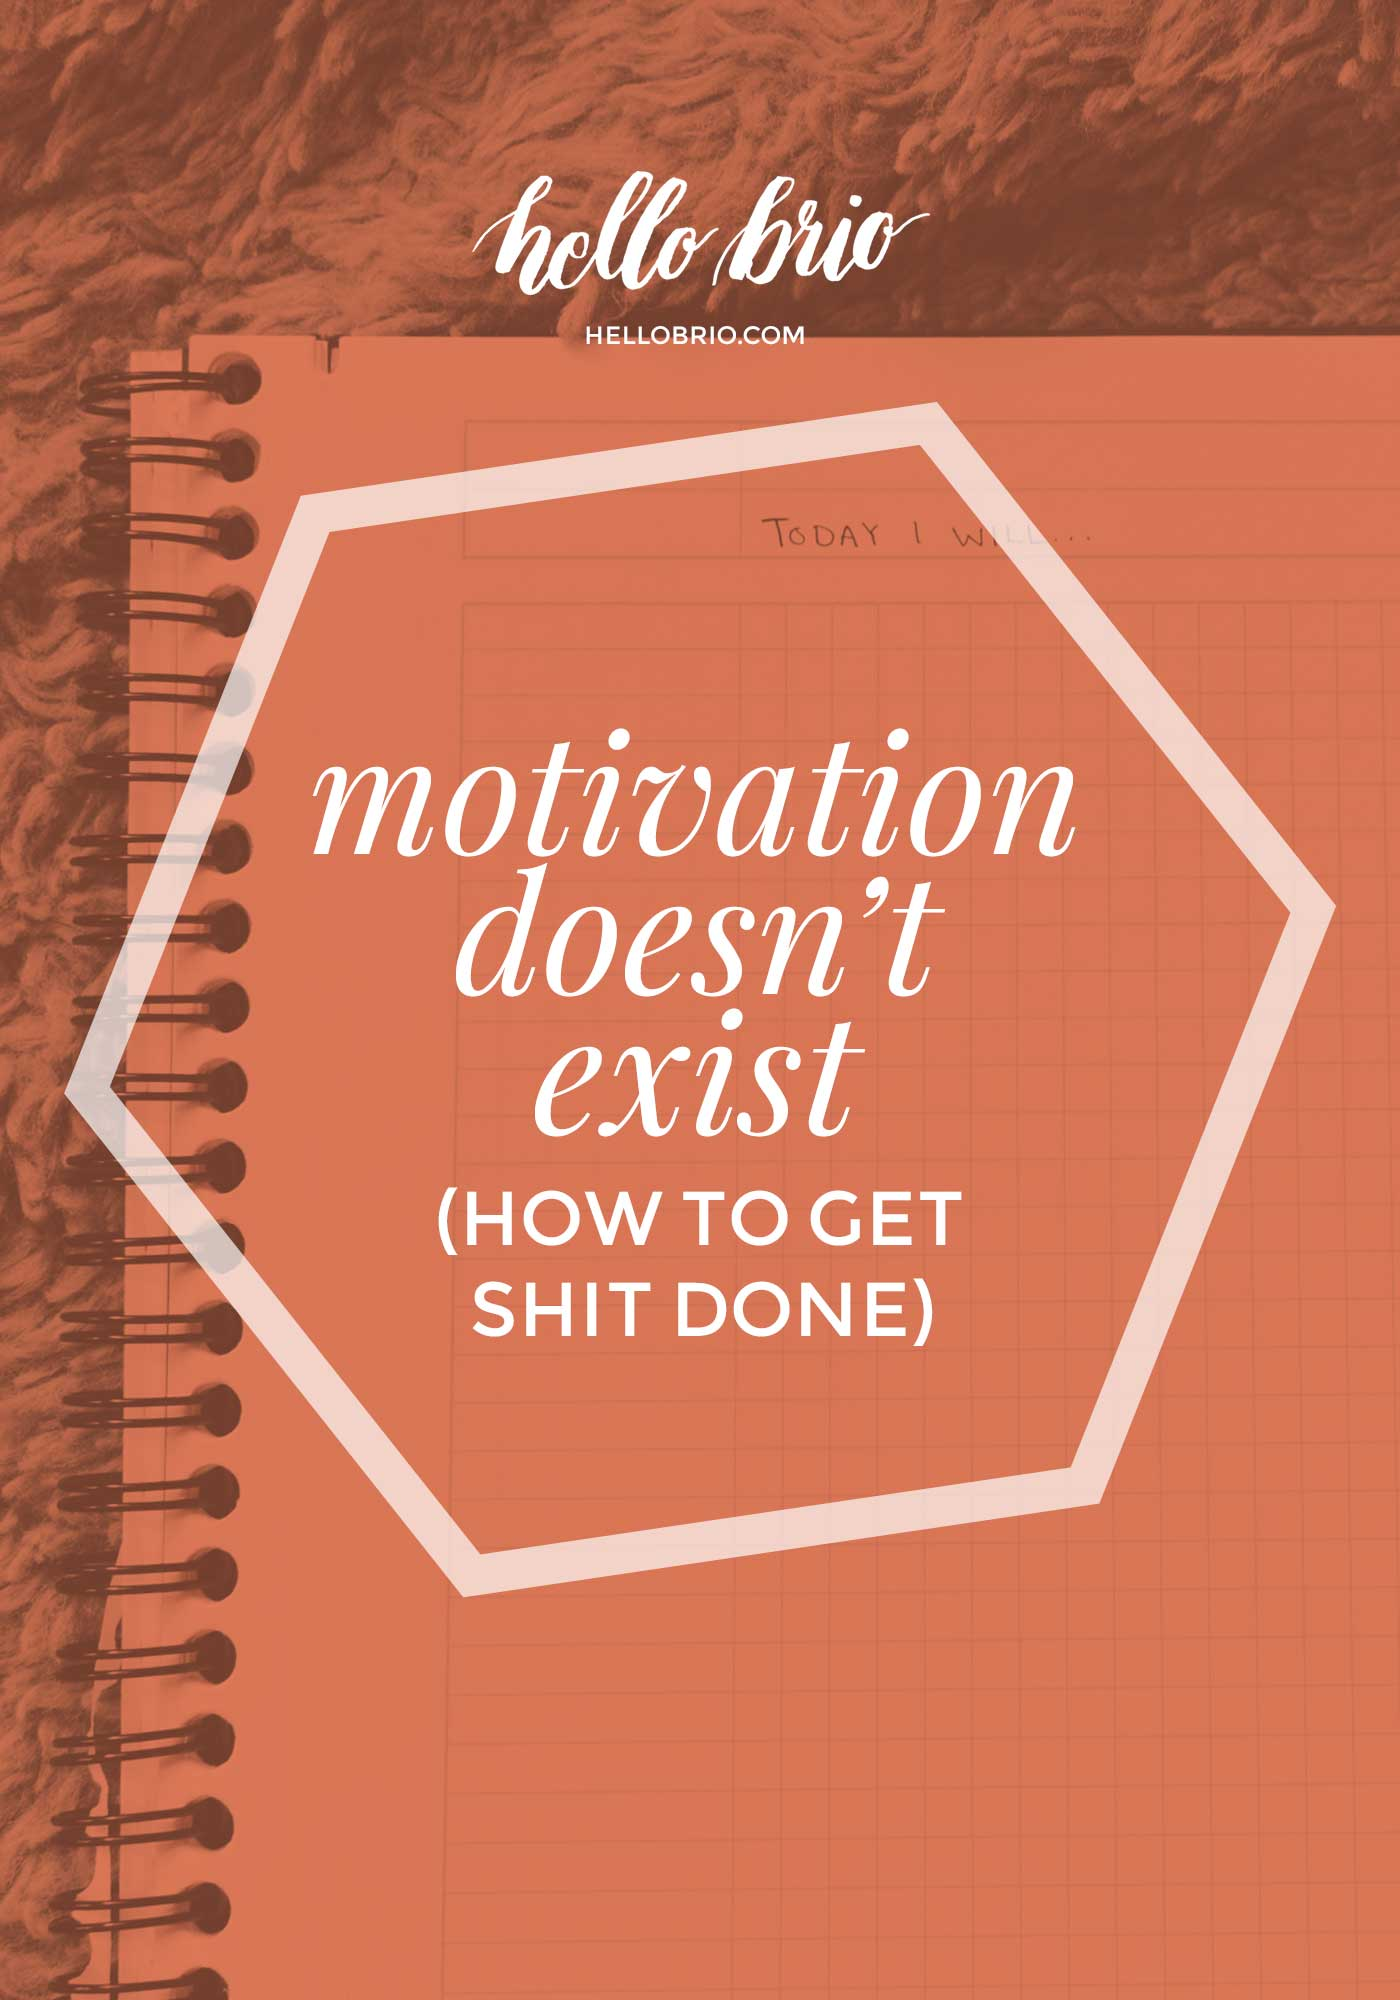 Motivation doesn't exist